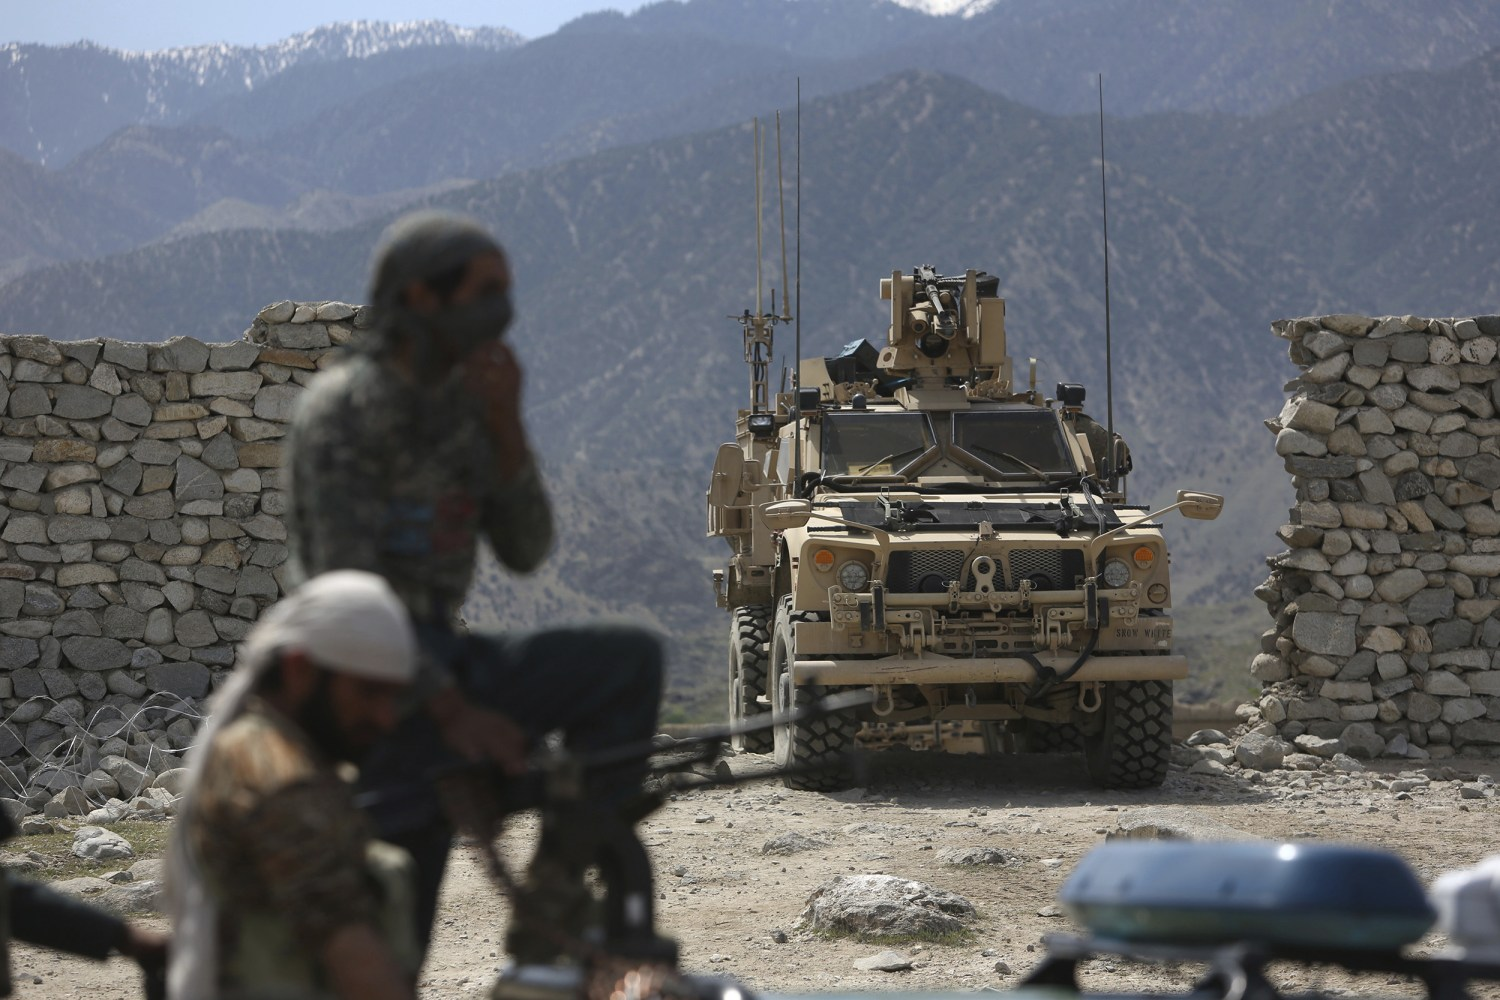 U.S. soldier killed and four others injured in Afghanistan battle